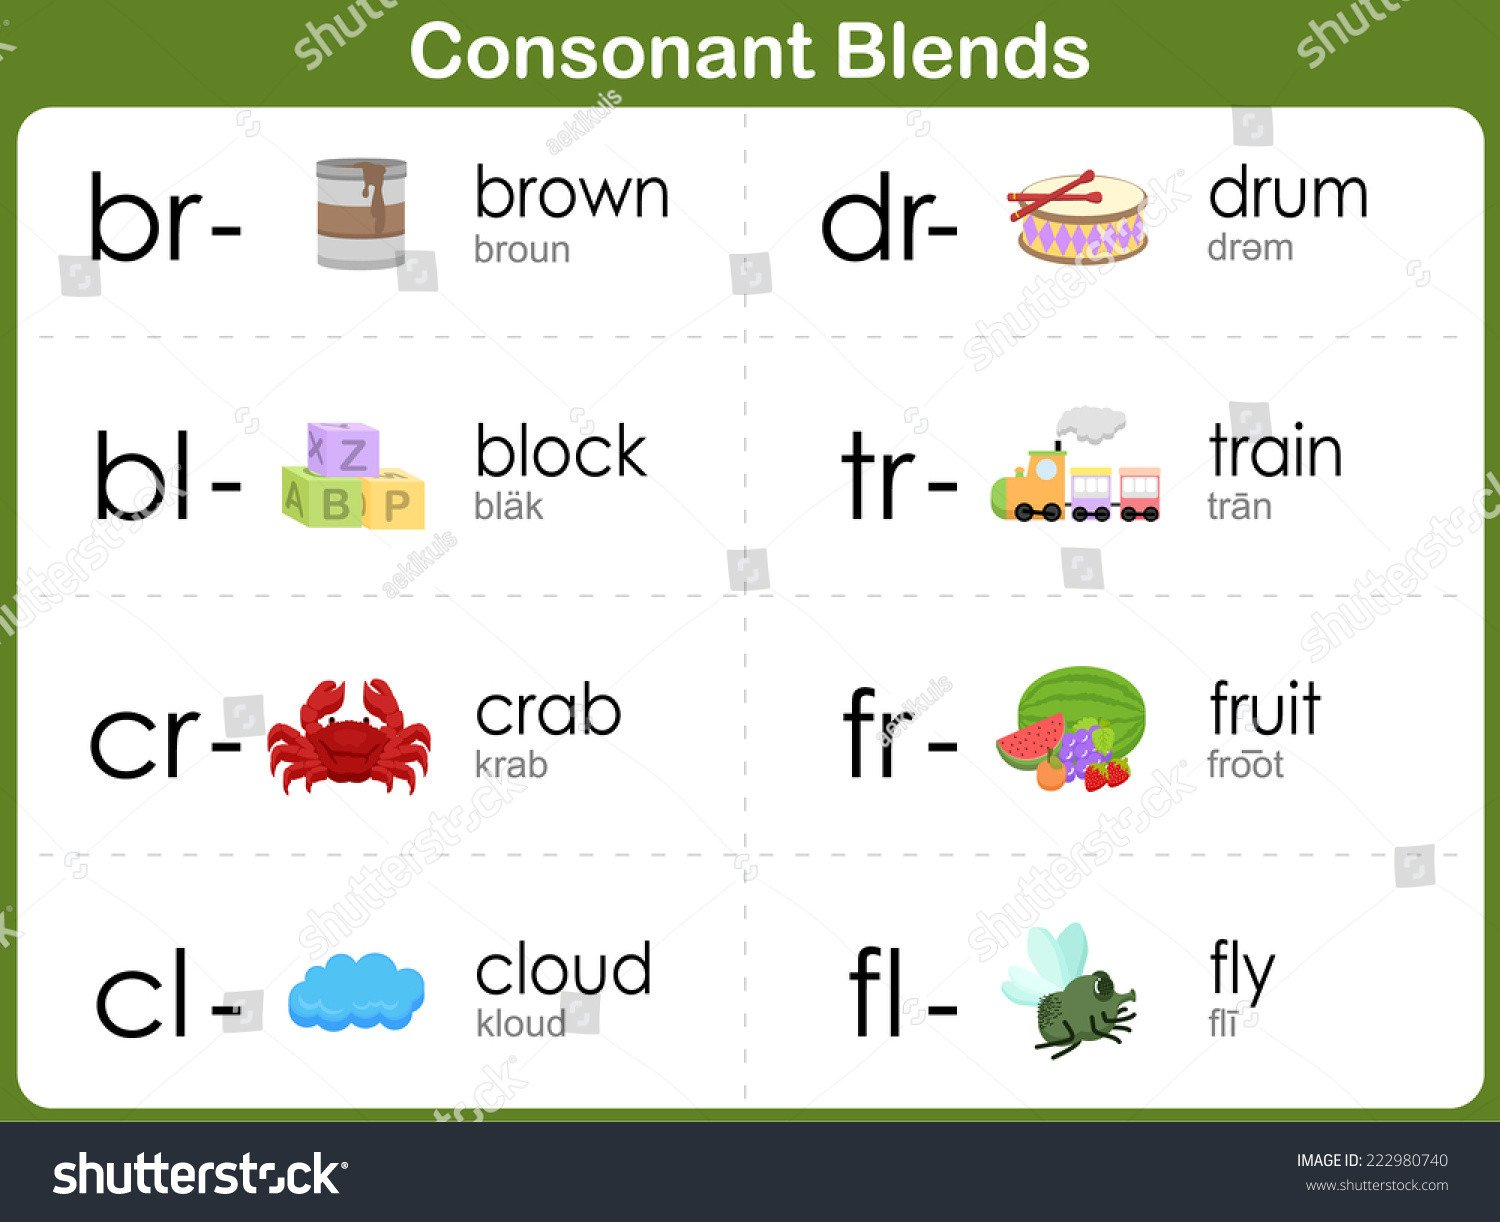 Consonant Blends Worksheets for Kindergarten Consonant Blends Worksheet Kids Stock Vector Royalty Free